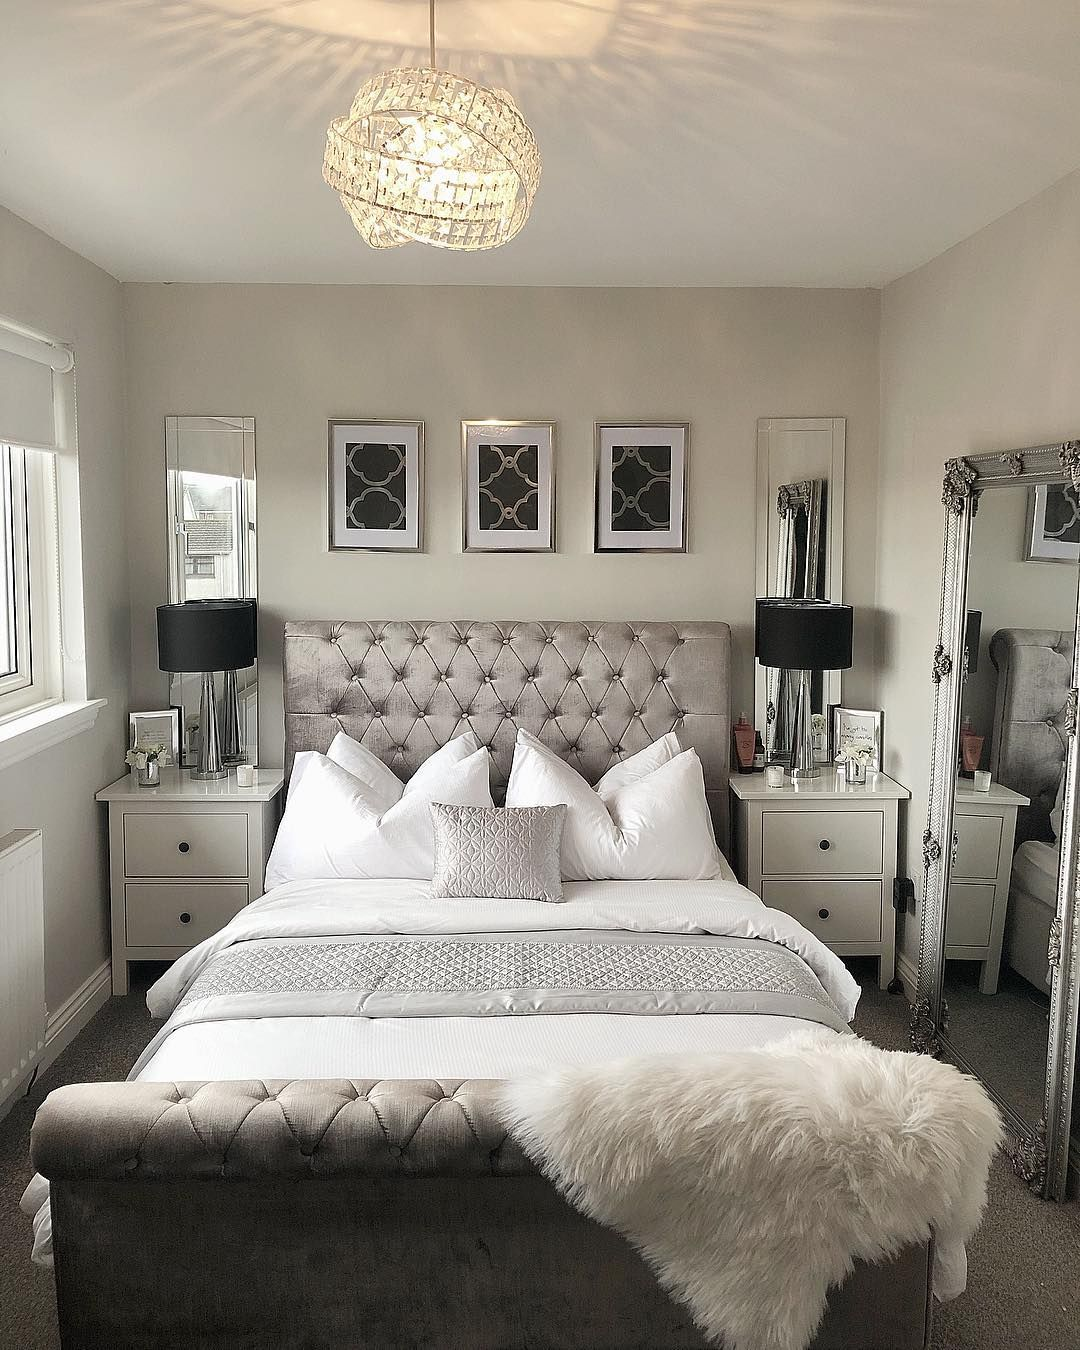 Mirrors behind nightstands | Silver bedroom furniture ... on Mirrors For Teenage Bedroom  id=51372